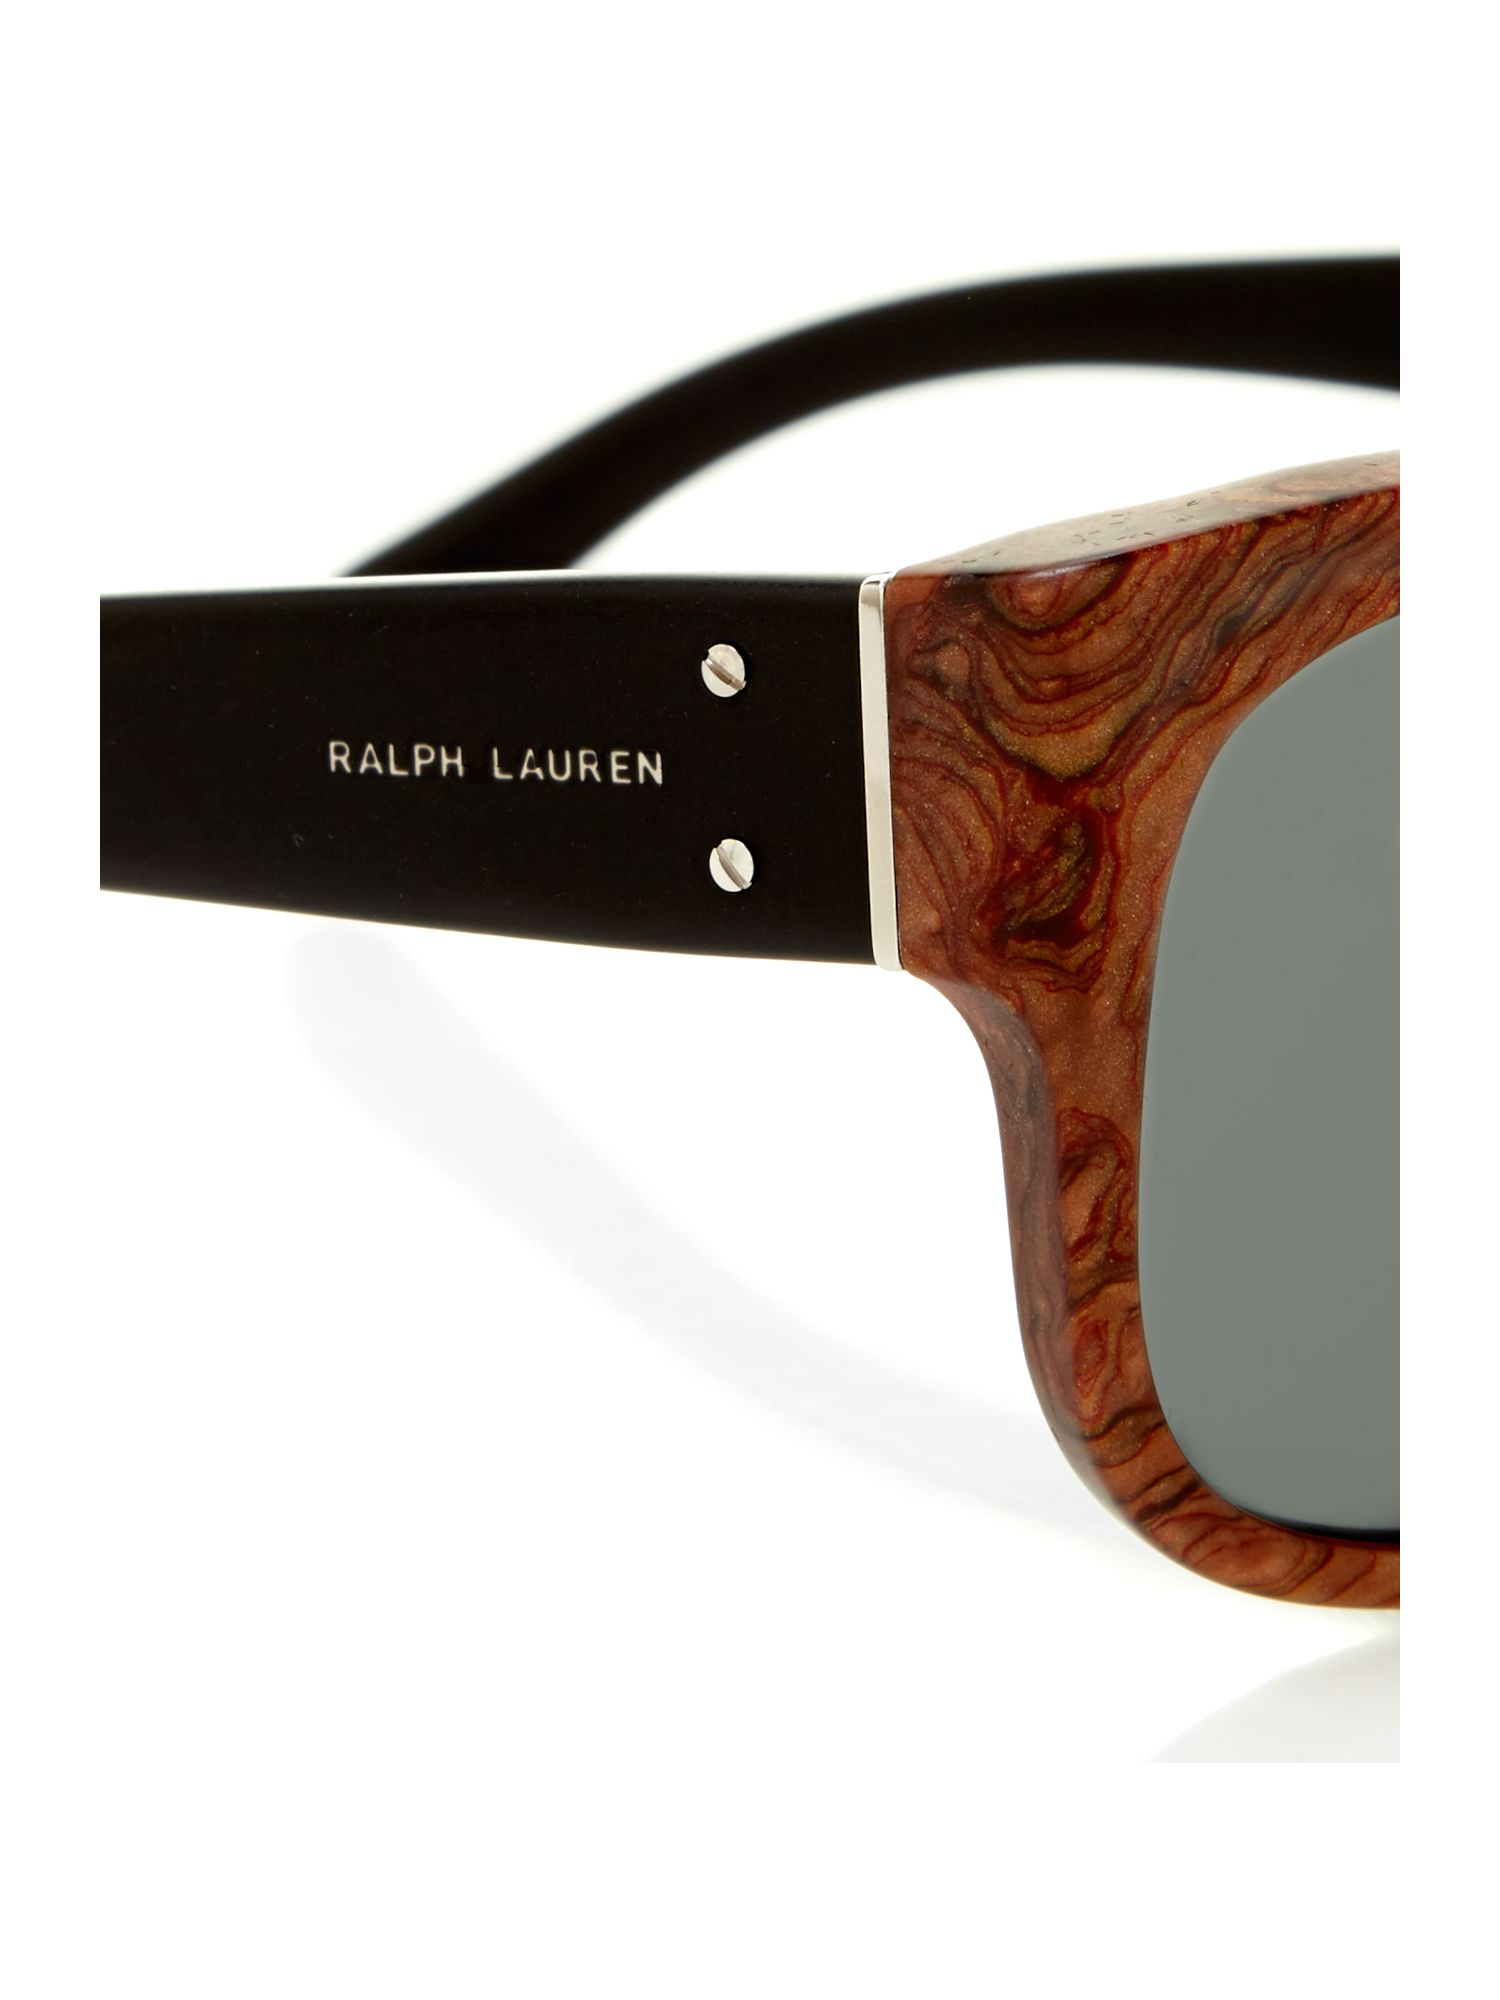 Ralph Lauren Sunglasses Mens  polo ralph lauren mens automotivesp sunglasses in brown for men lyst